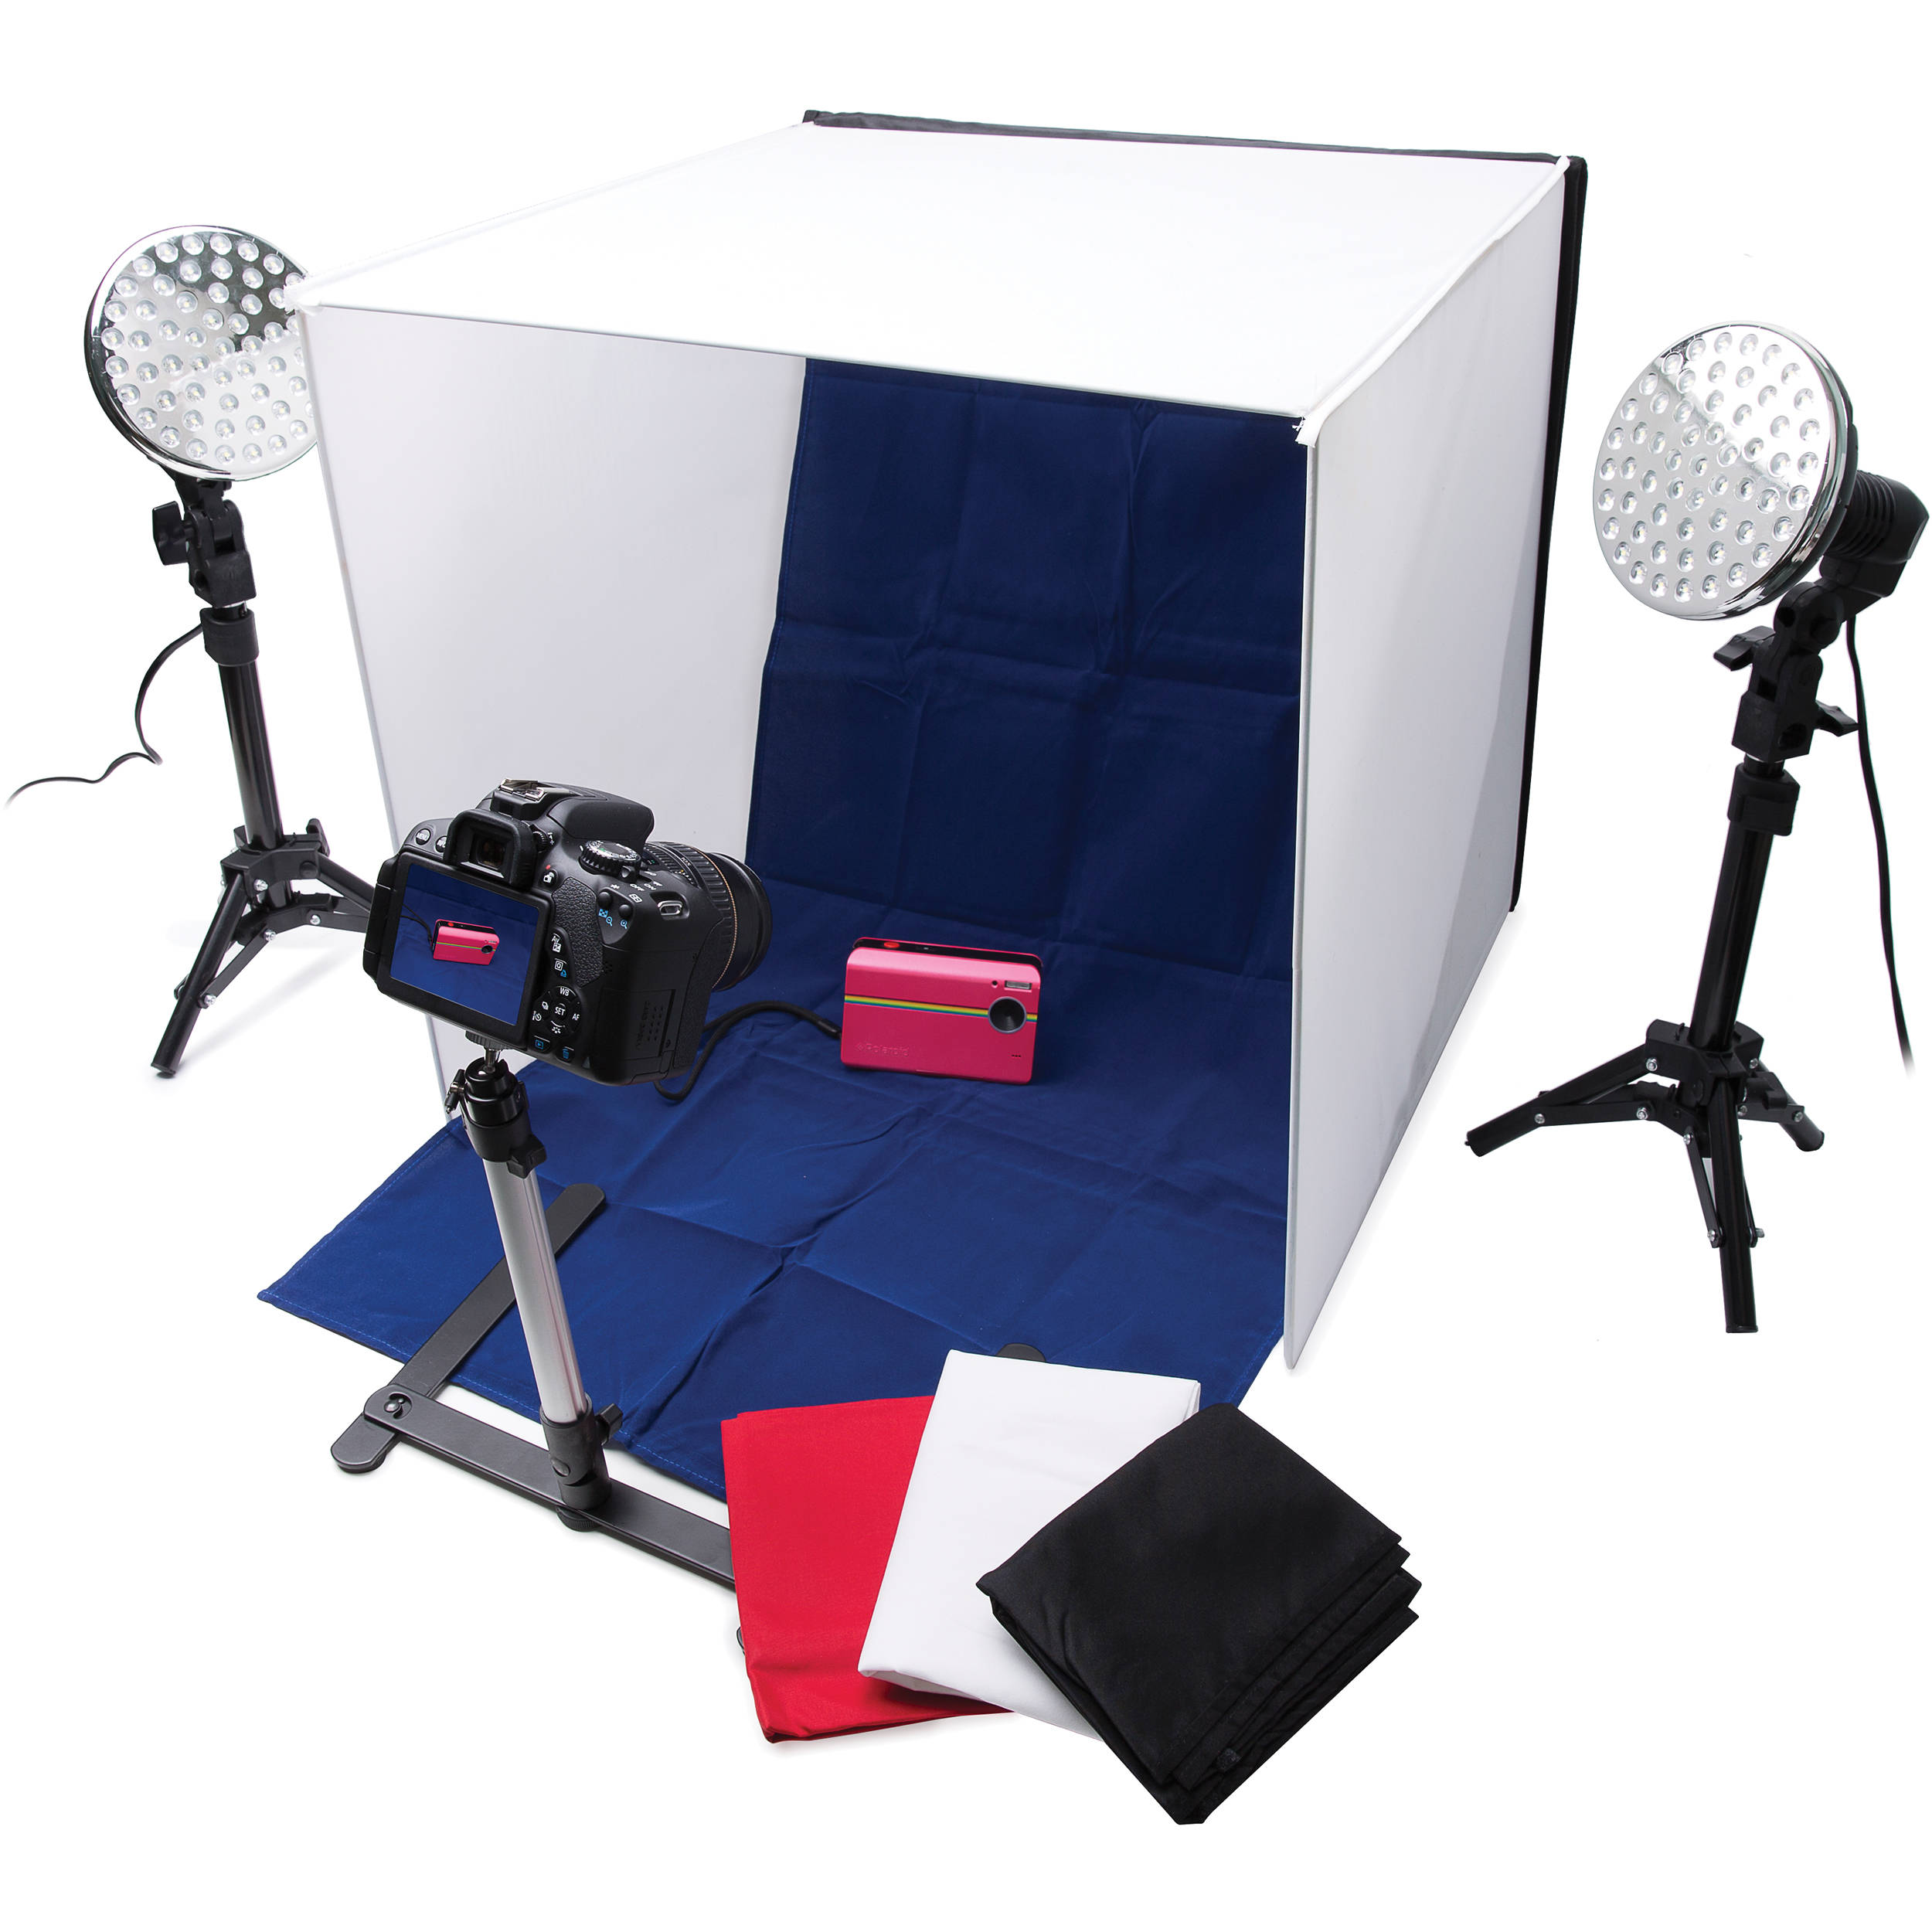 Polaroid Pro Table Top Photo Studio Kit  sc 1 st  Bu0026H : portable studio lighting kit - azcodes.com